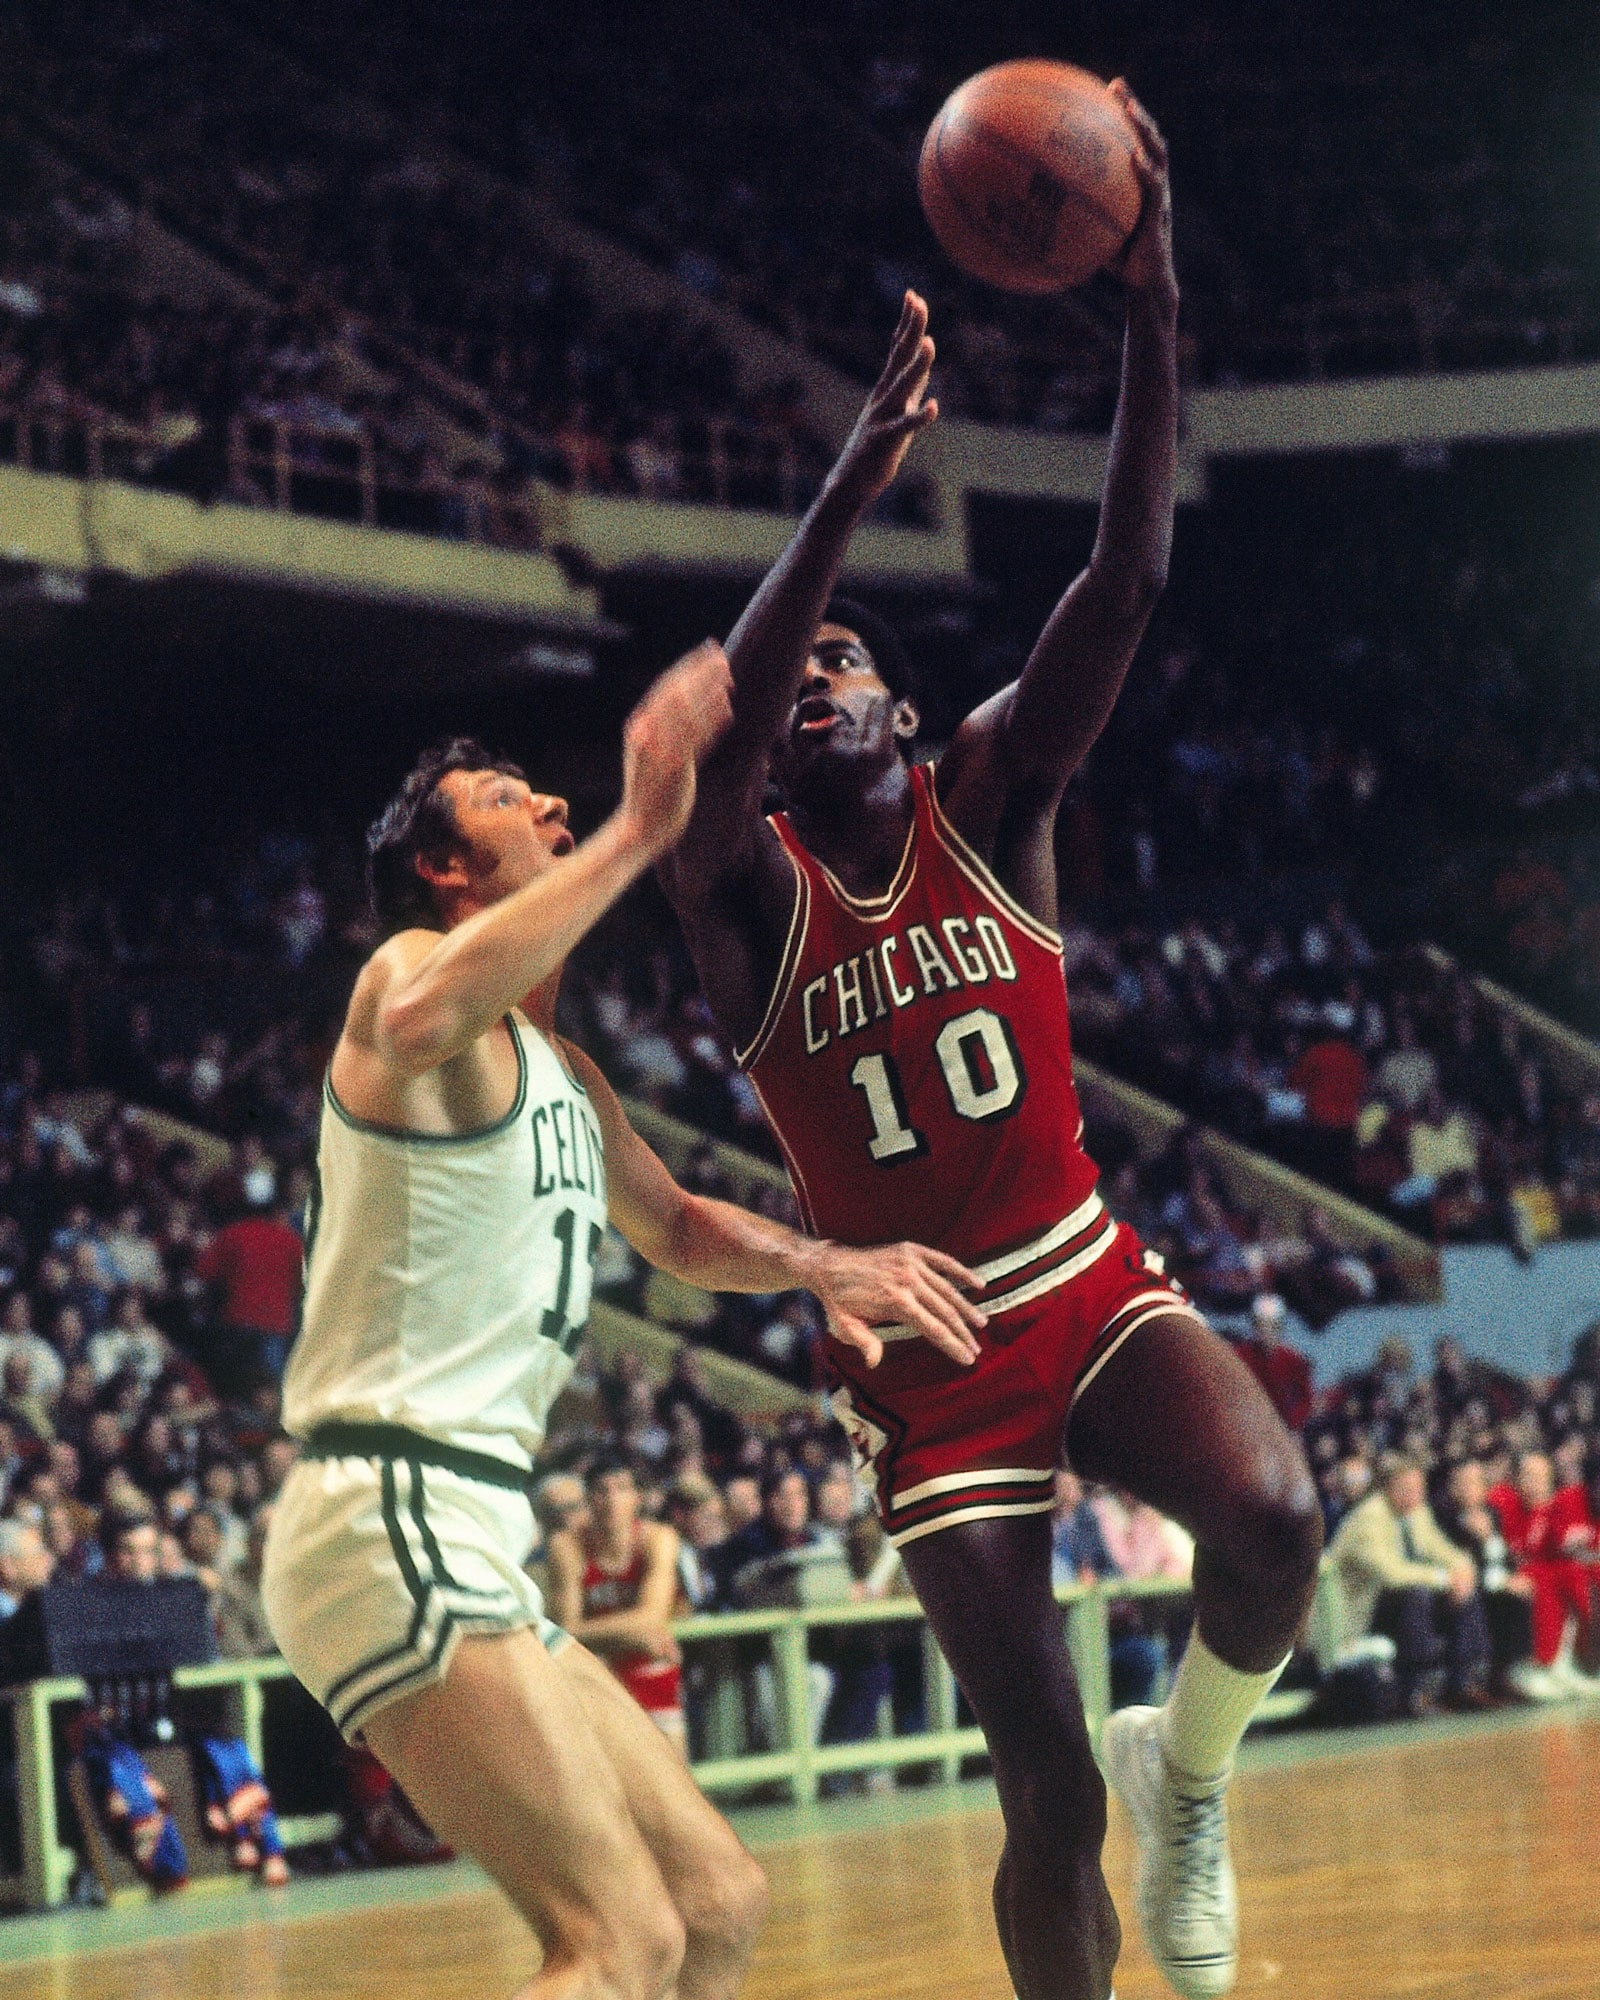 Bob Love of the Chicago Bulls finished the All-Star game with six points and three rebounds off the bench for the West.